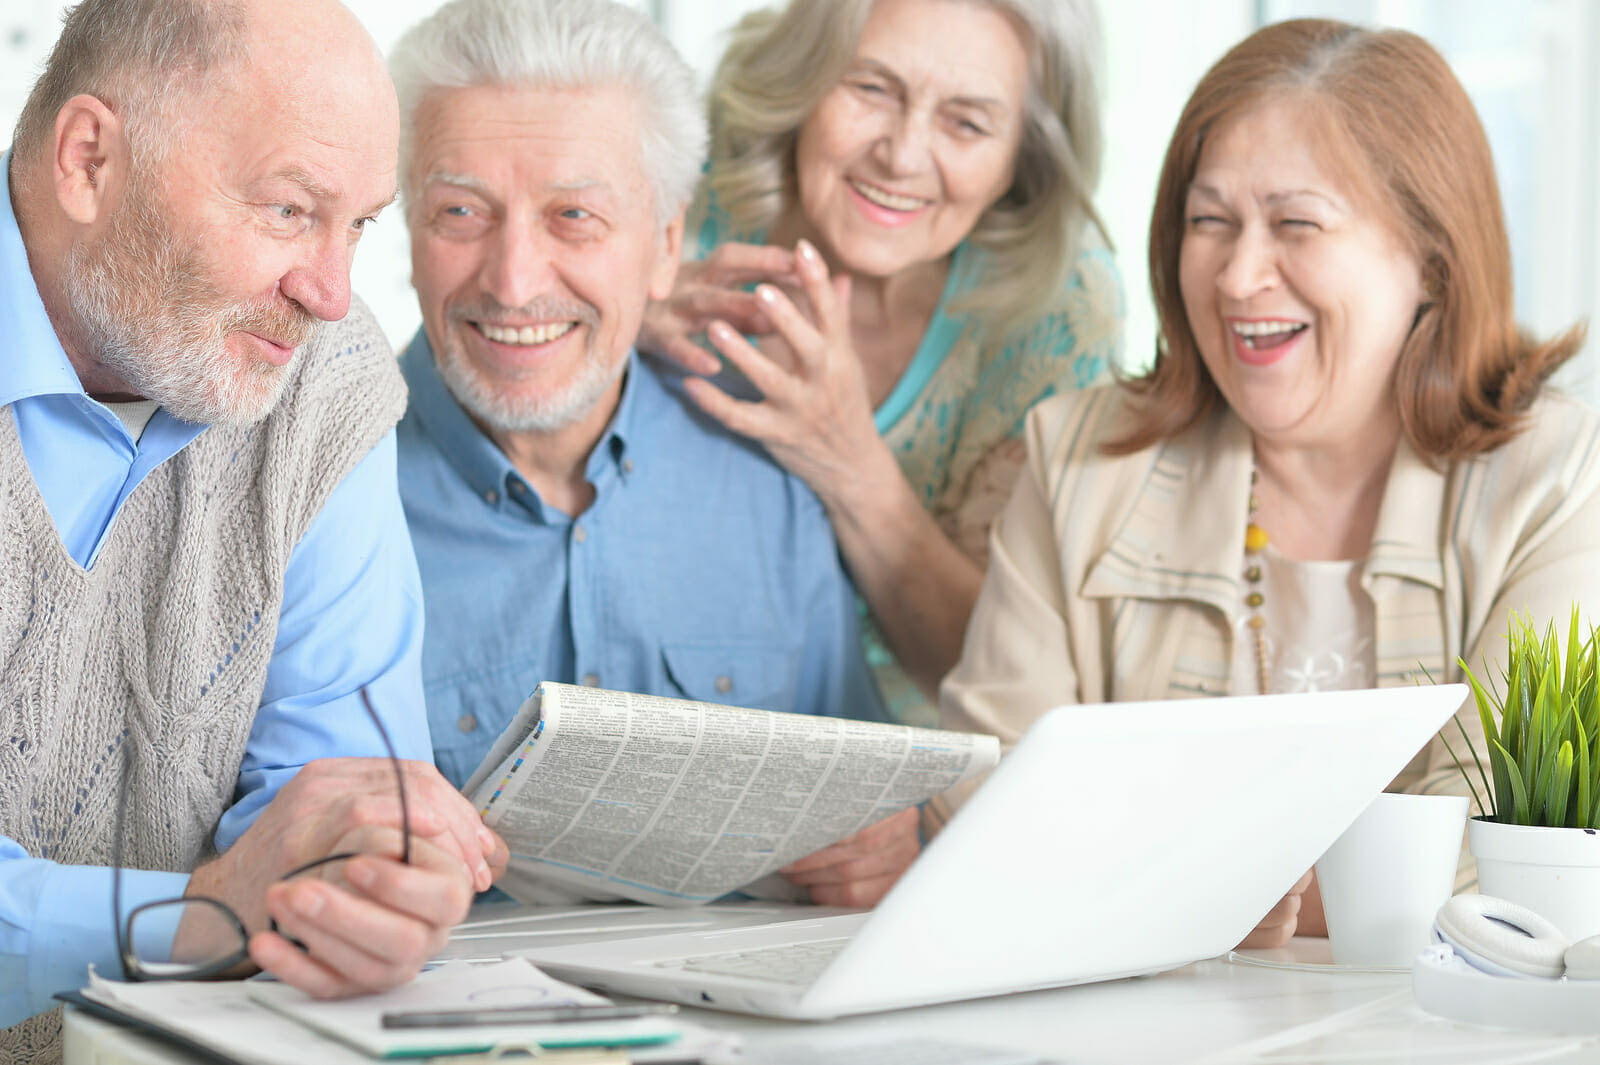 Two Senior Couples Sitting At Table And Working With Laptop